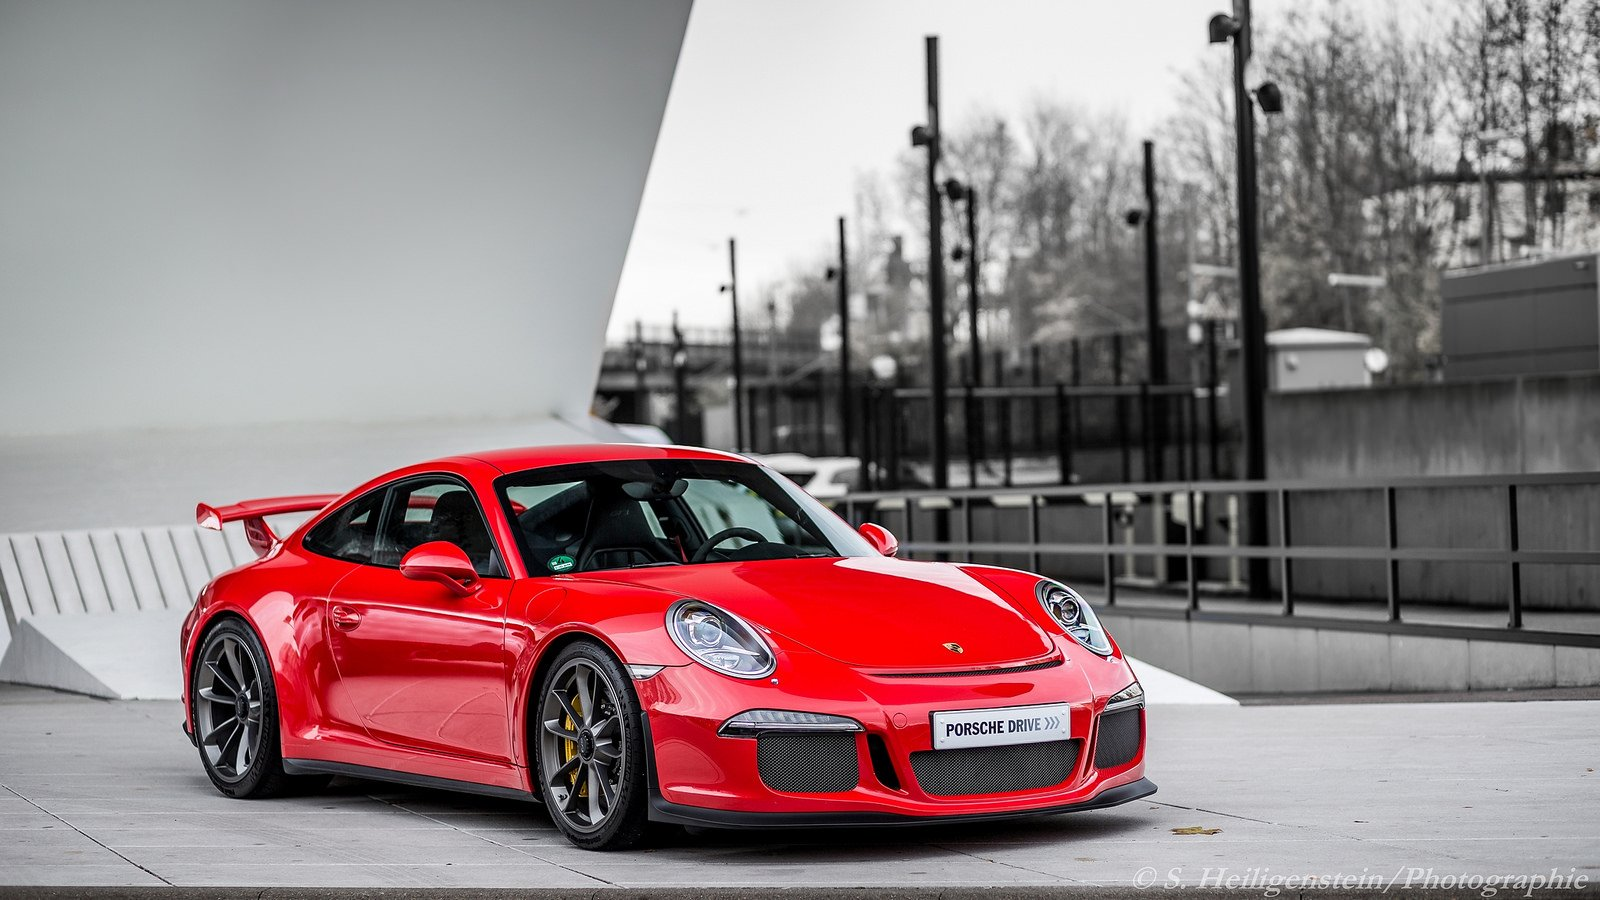 4k Girl Wallpaper Porsche 911 Porsche 911 Gt3 Gt3 Rs Coupe Cars Germany Red